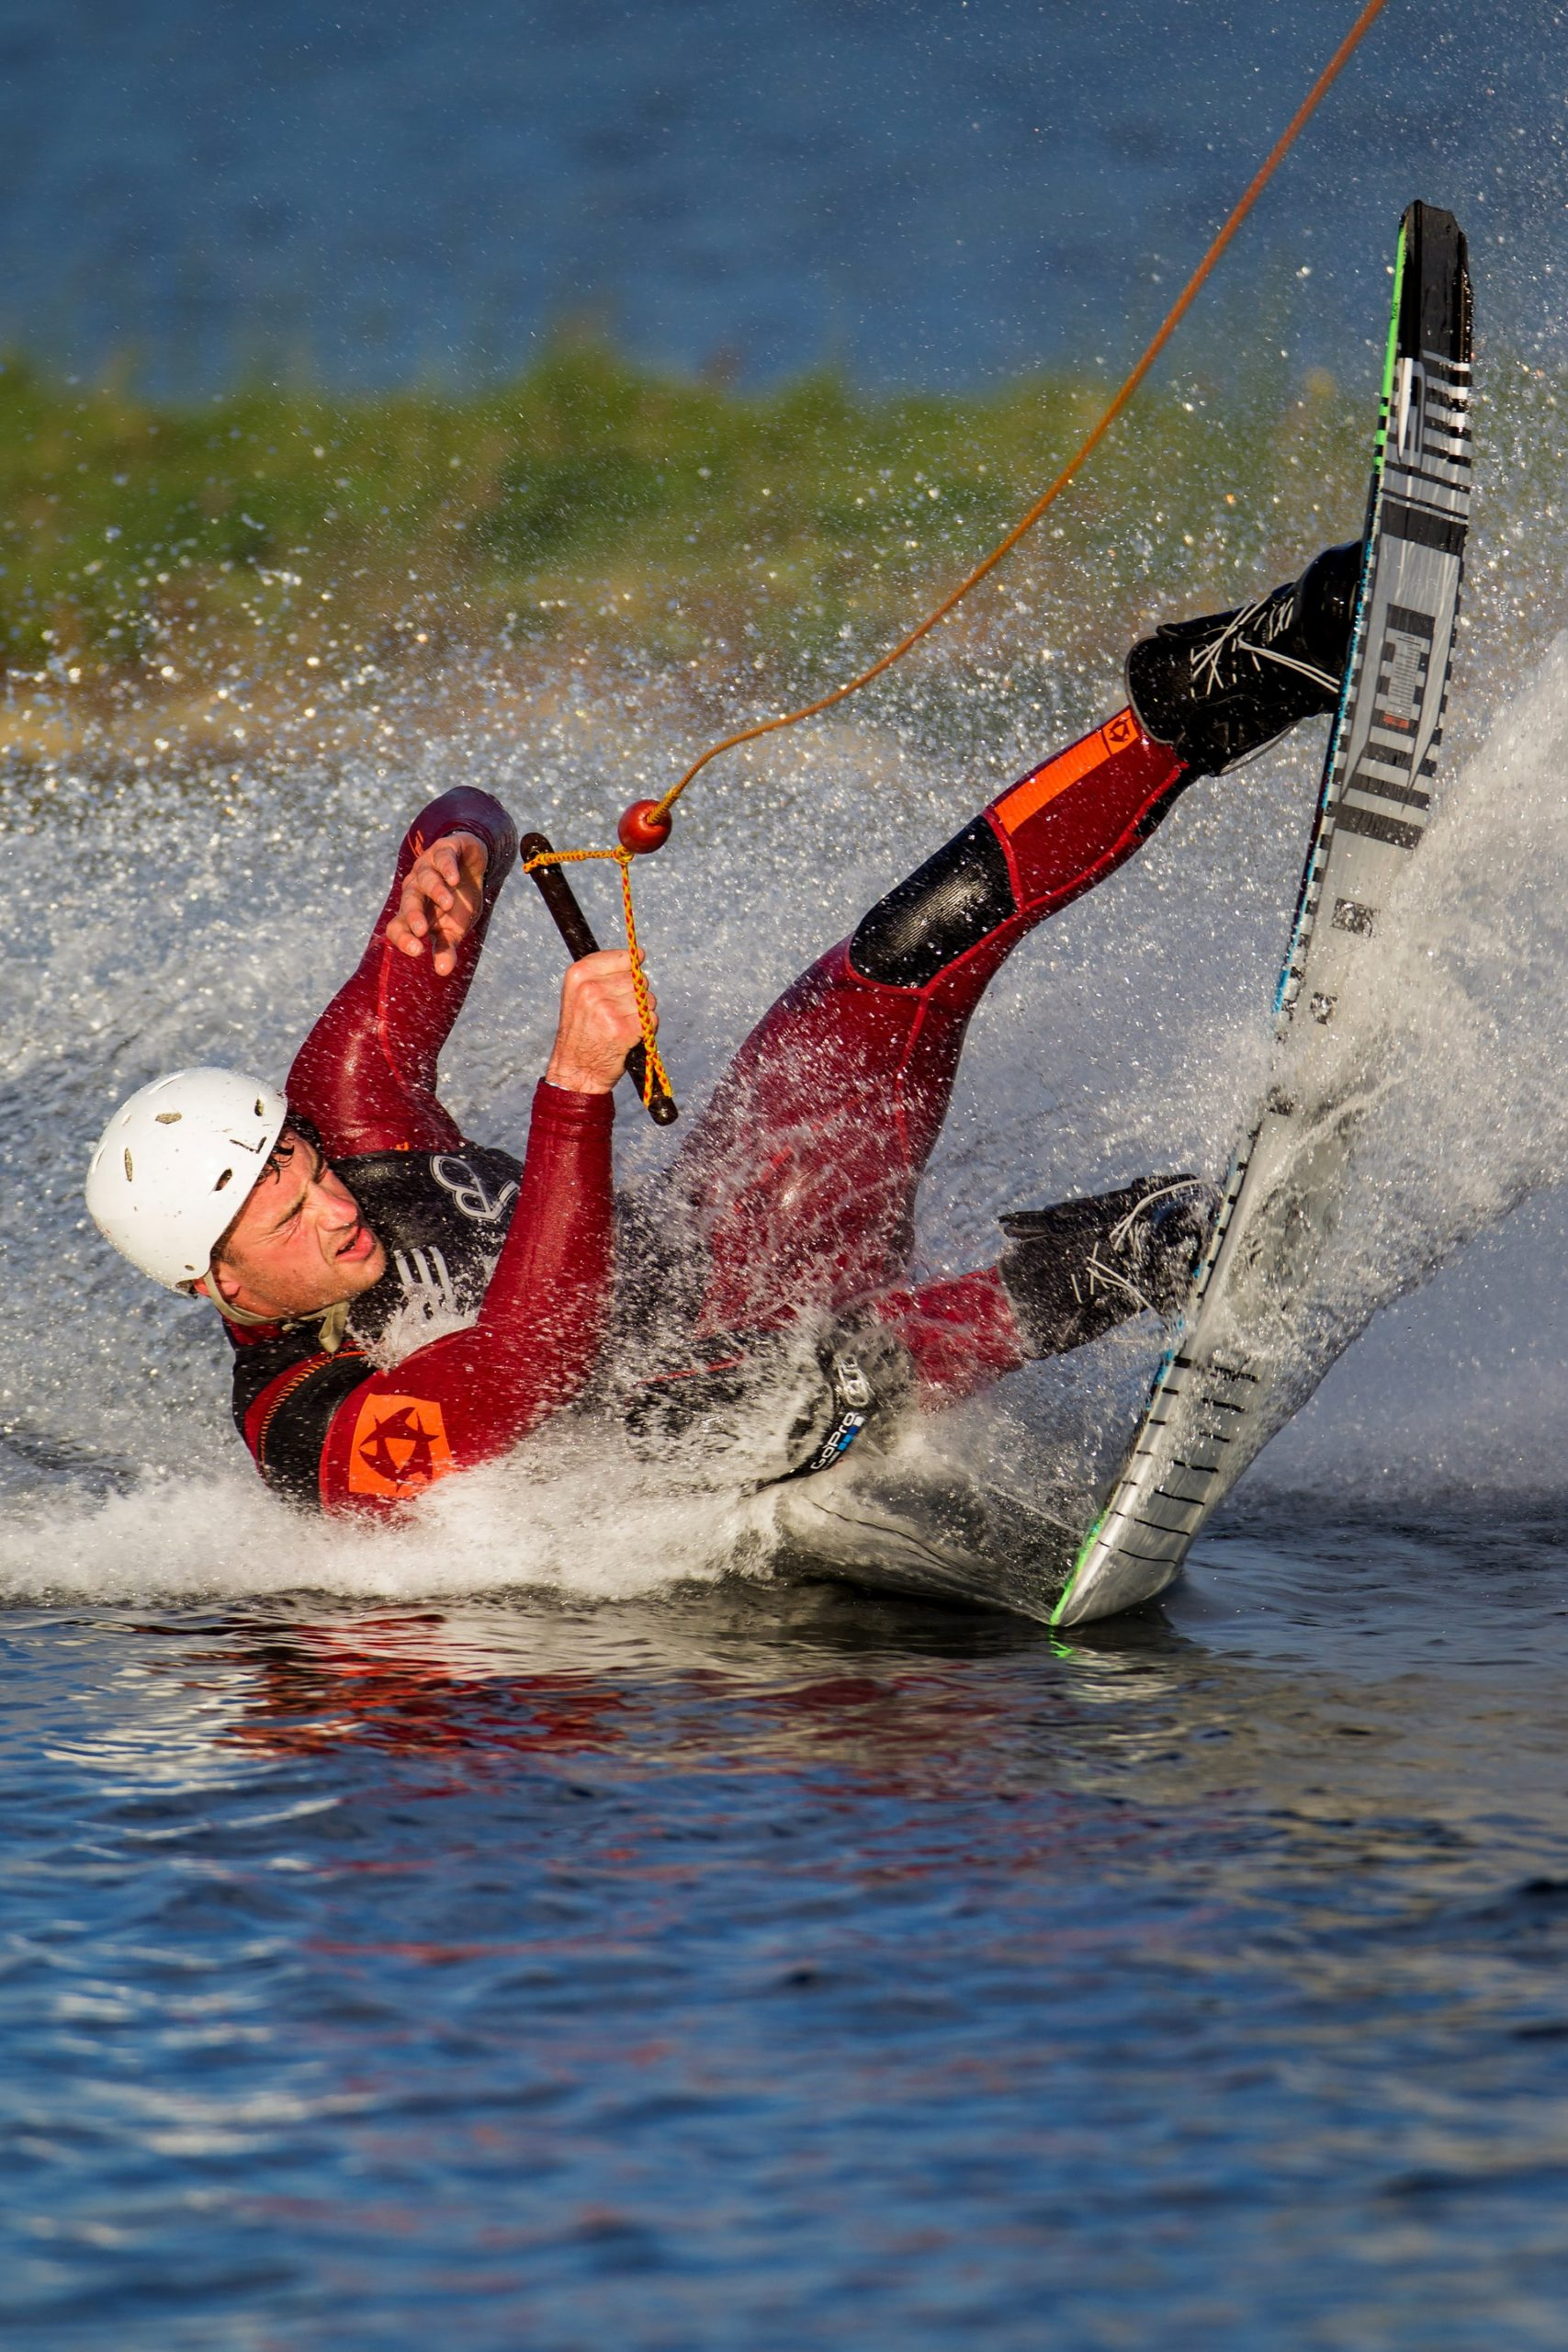 Factors Water Sports Equipment Article Image